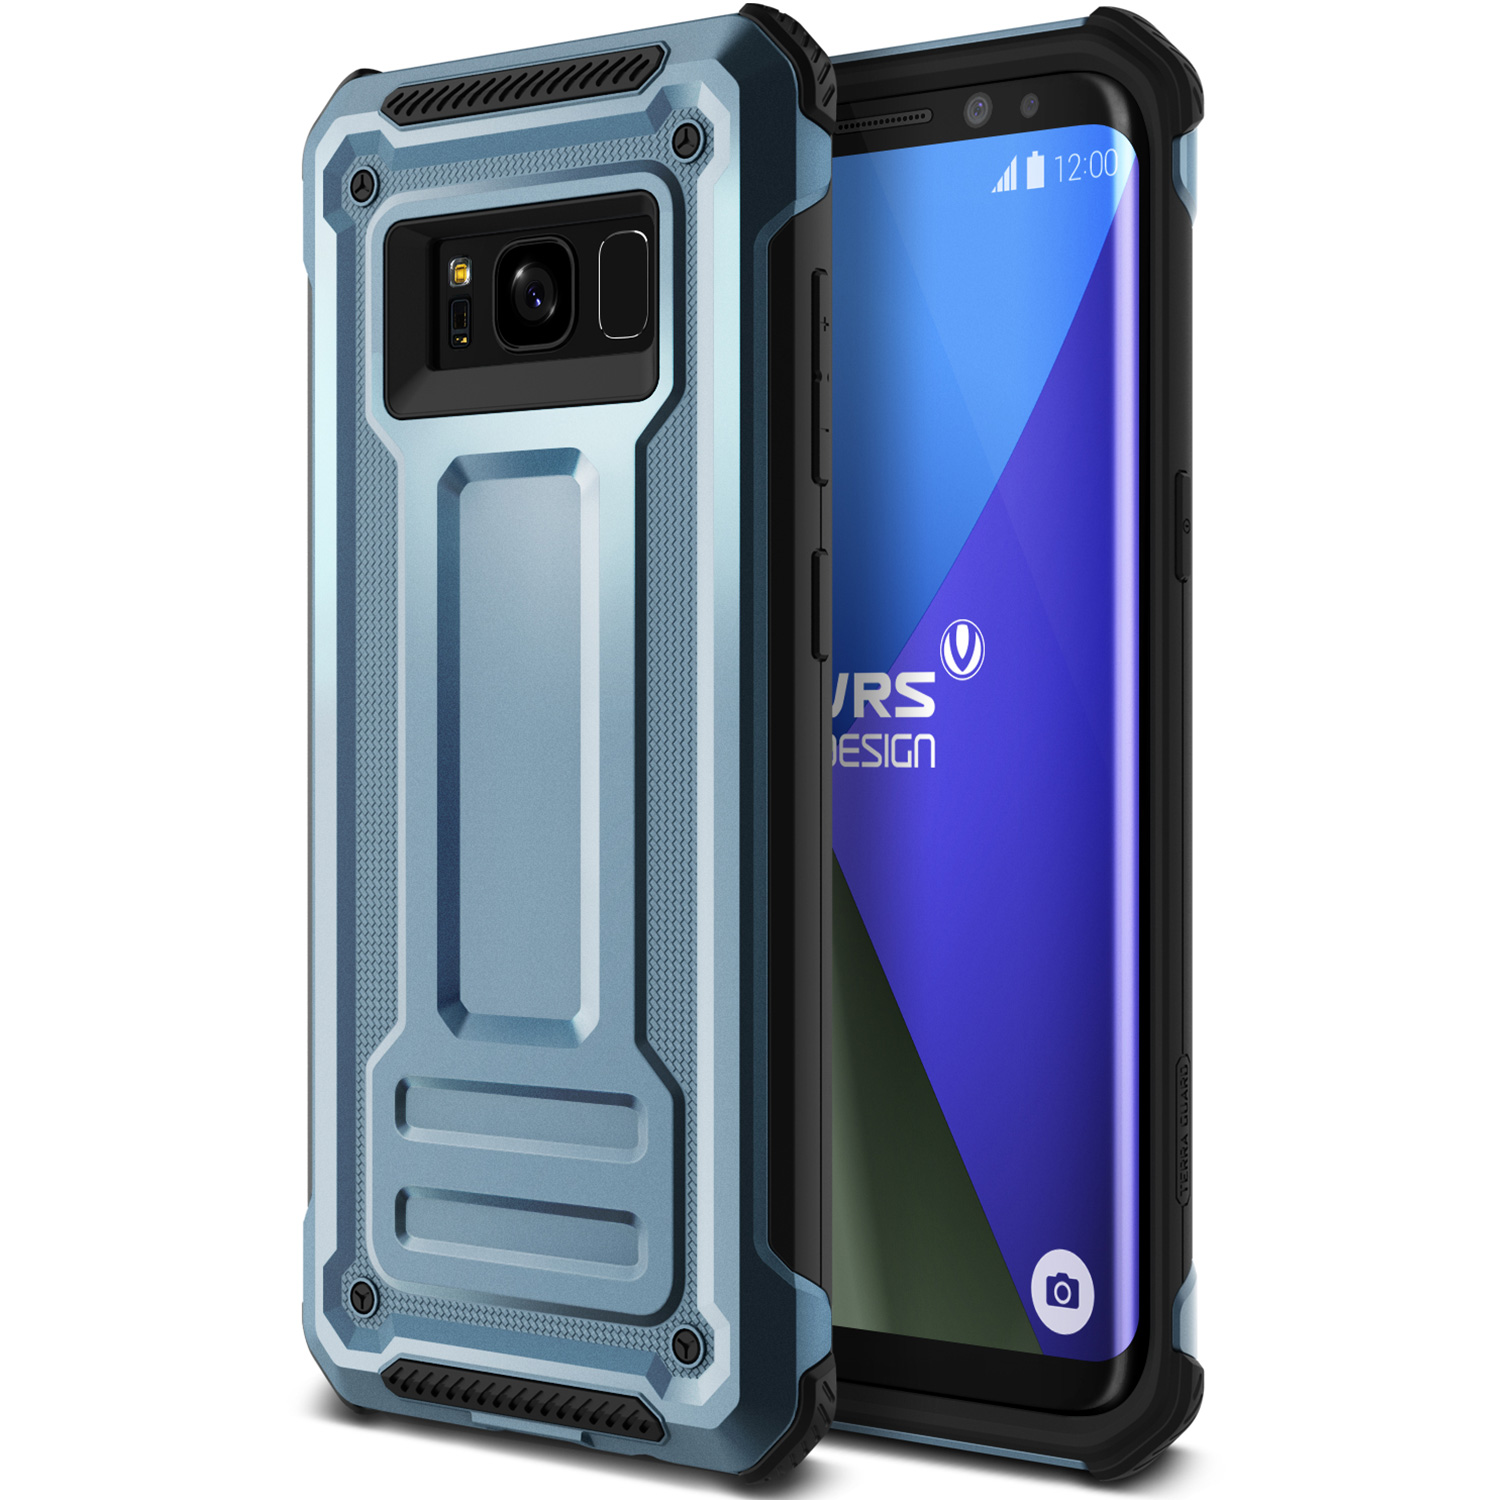 Samsung Galaxy S8 Case Cover | Shockproof Slim Protection | VRS Design Terra Guard for Samsung Galaxy S8